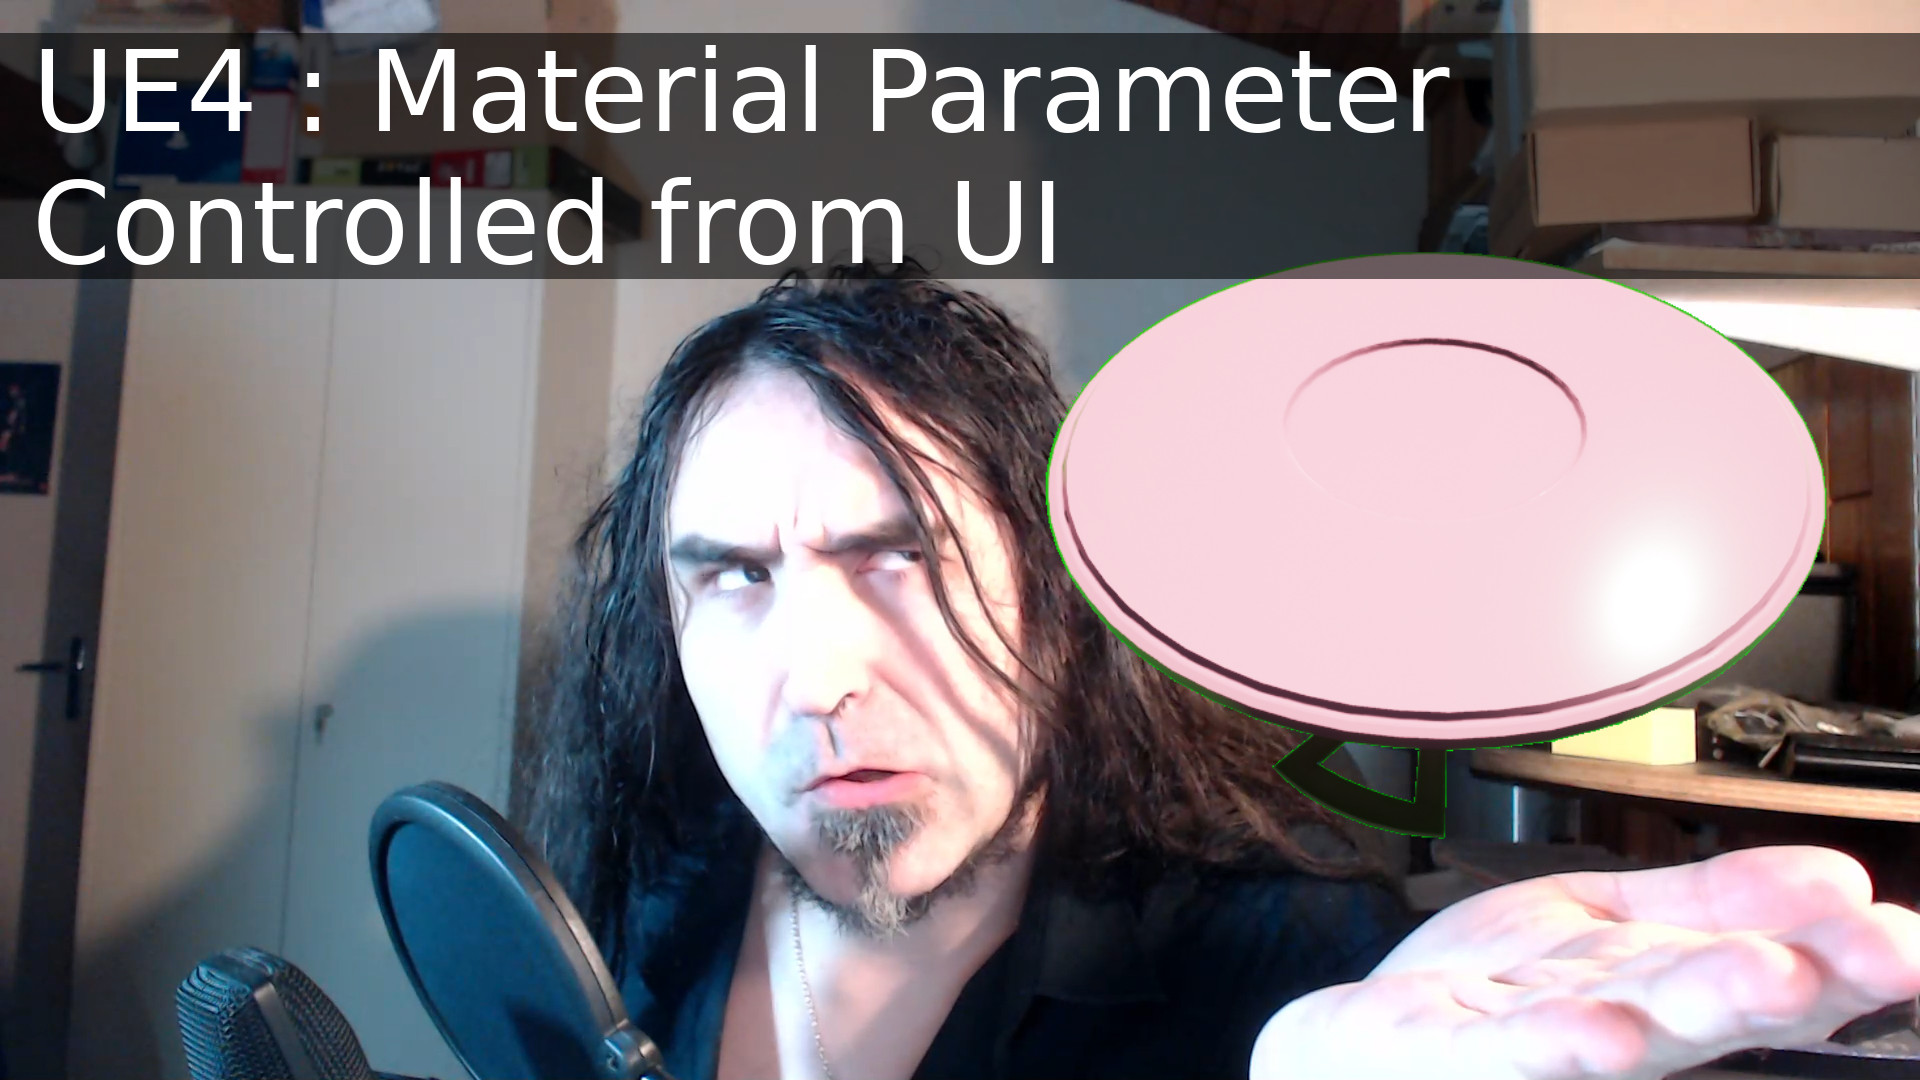 UE4 : Material Parameter Controlled from UI. Color example.